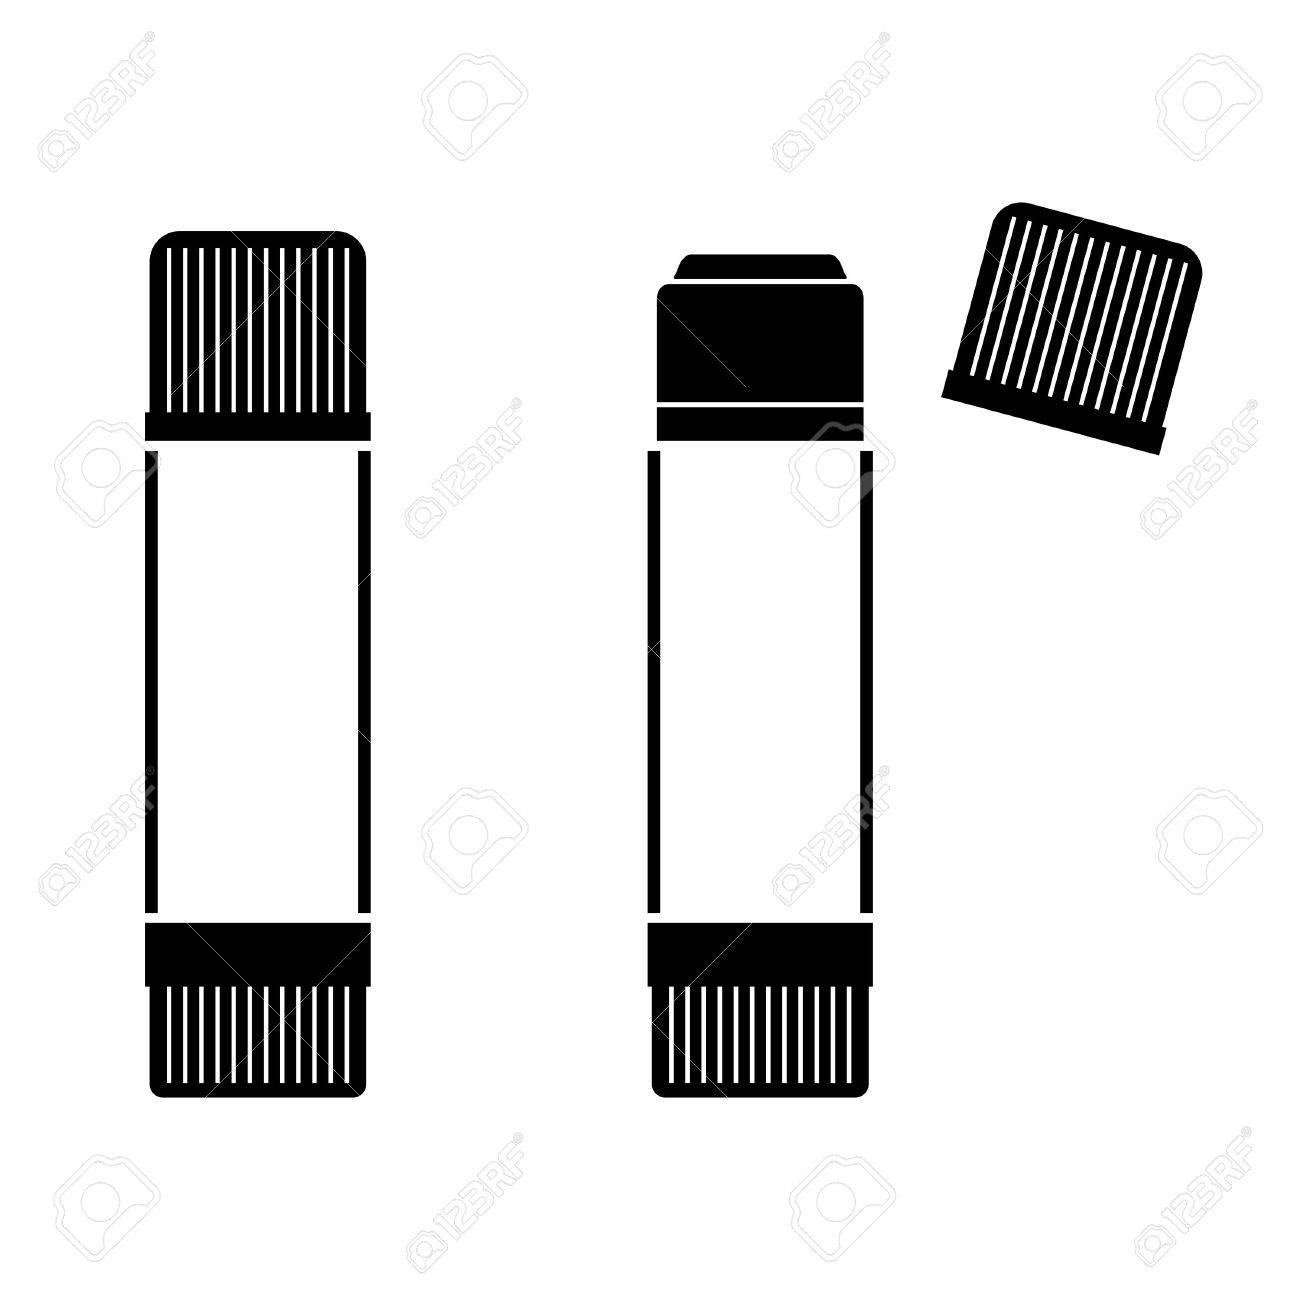 glue stick royalty free cliparts, vectors, and stock illustration